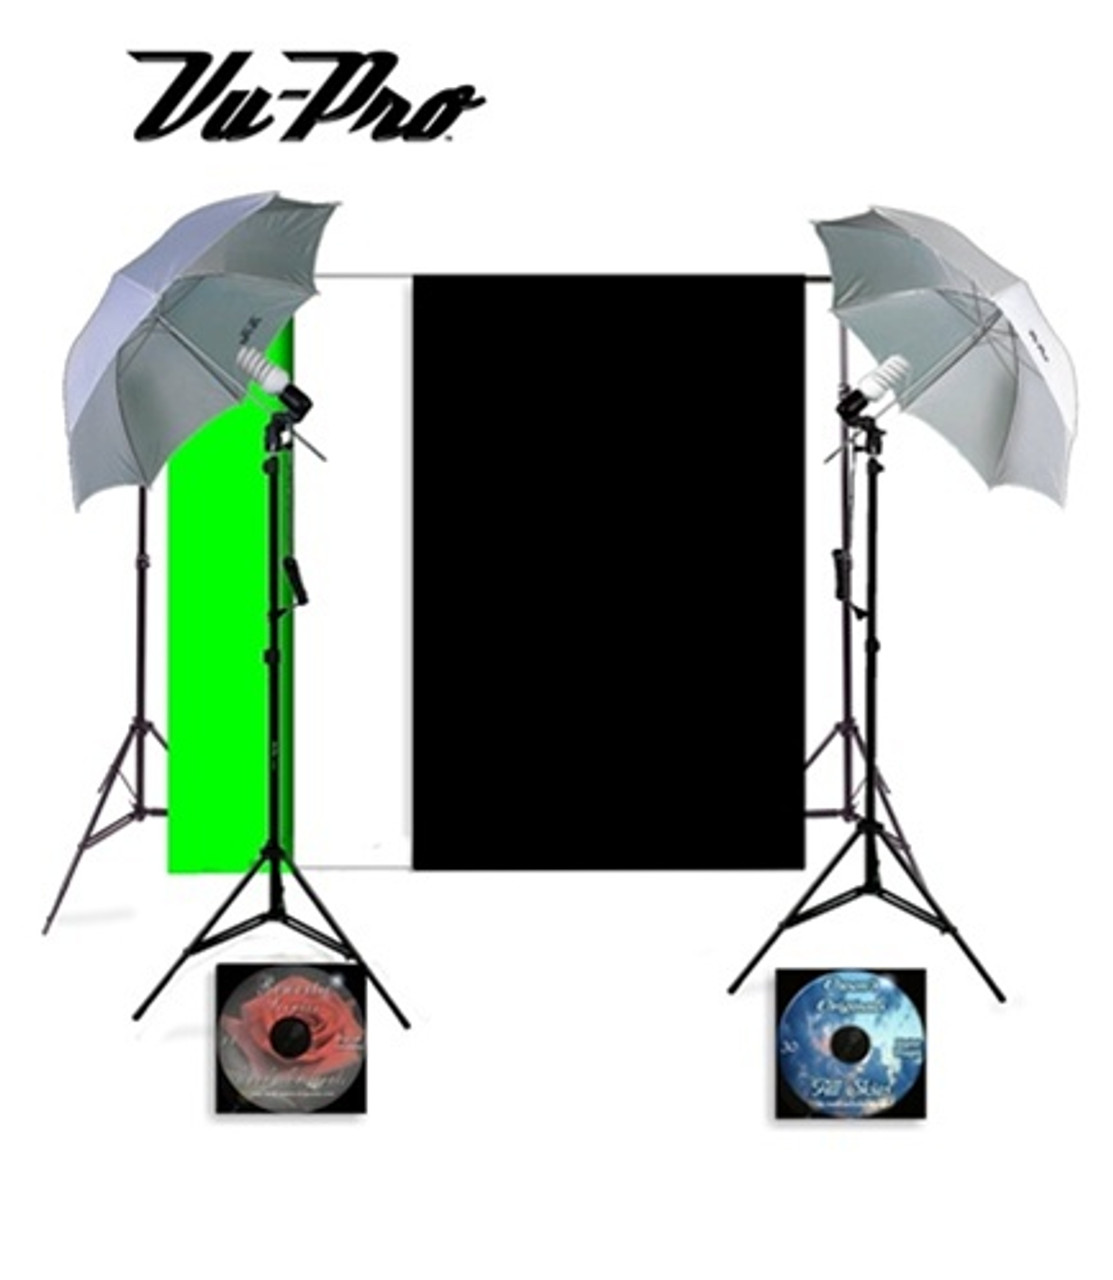 Vu-Pro Complete Basic Home Photography Studio Package Photo Lighting Photography Backdrop Stands Light Stands Plus Digital Backdrops  sc 1 st  Owens Originals & Pro Complete Basic Home Photography Studio Package Photo Lighting ... azcodes.com